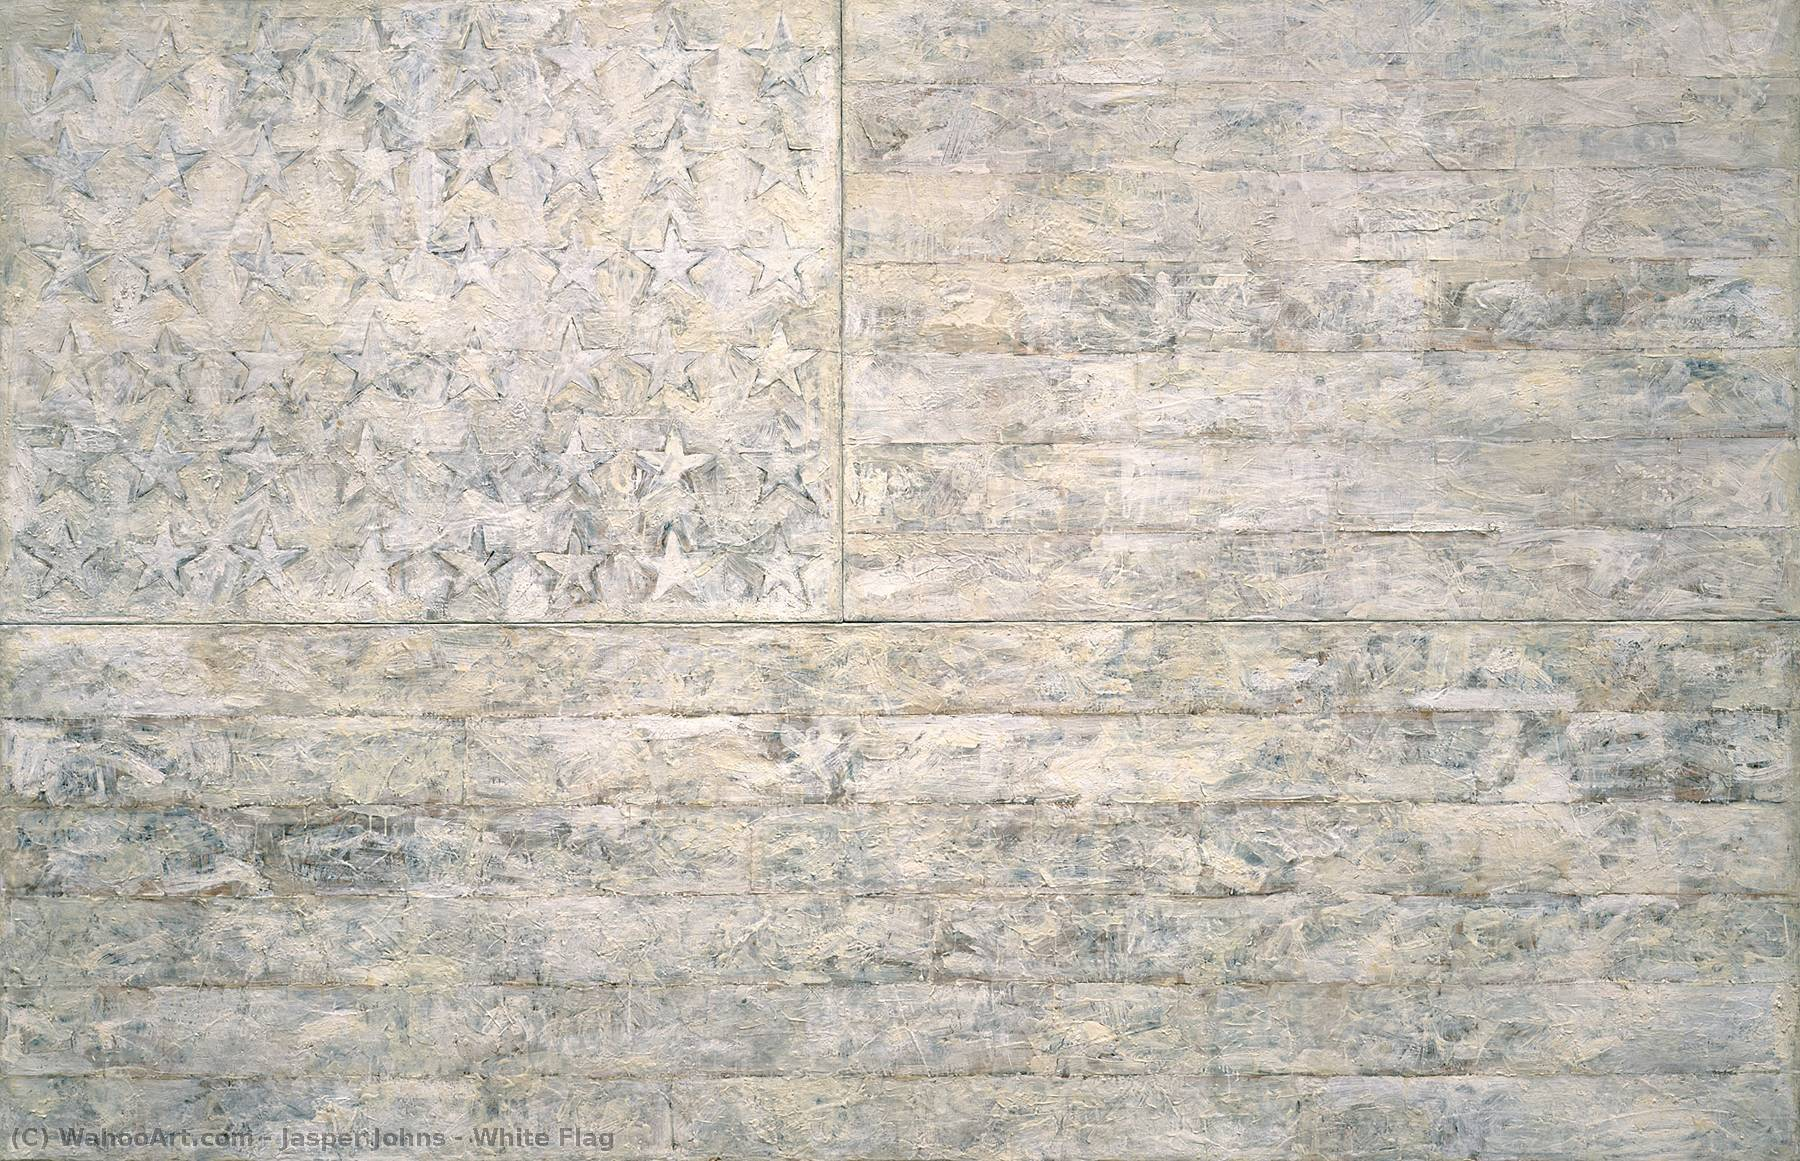 White Flag, 1955 by Jasper Johns